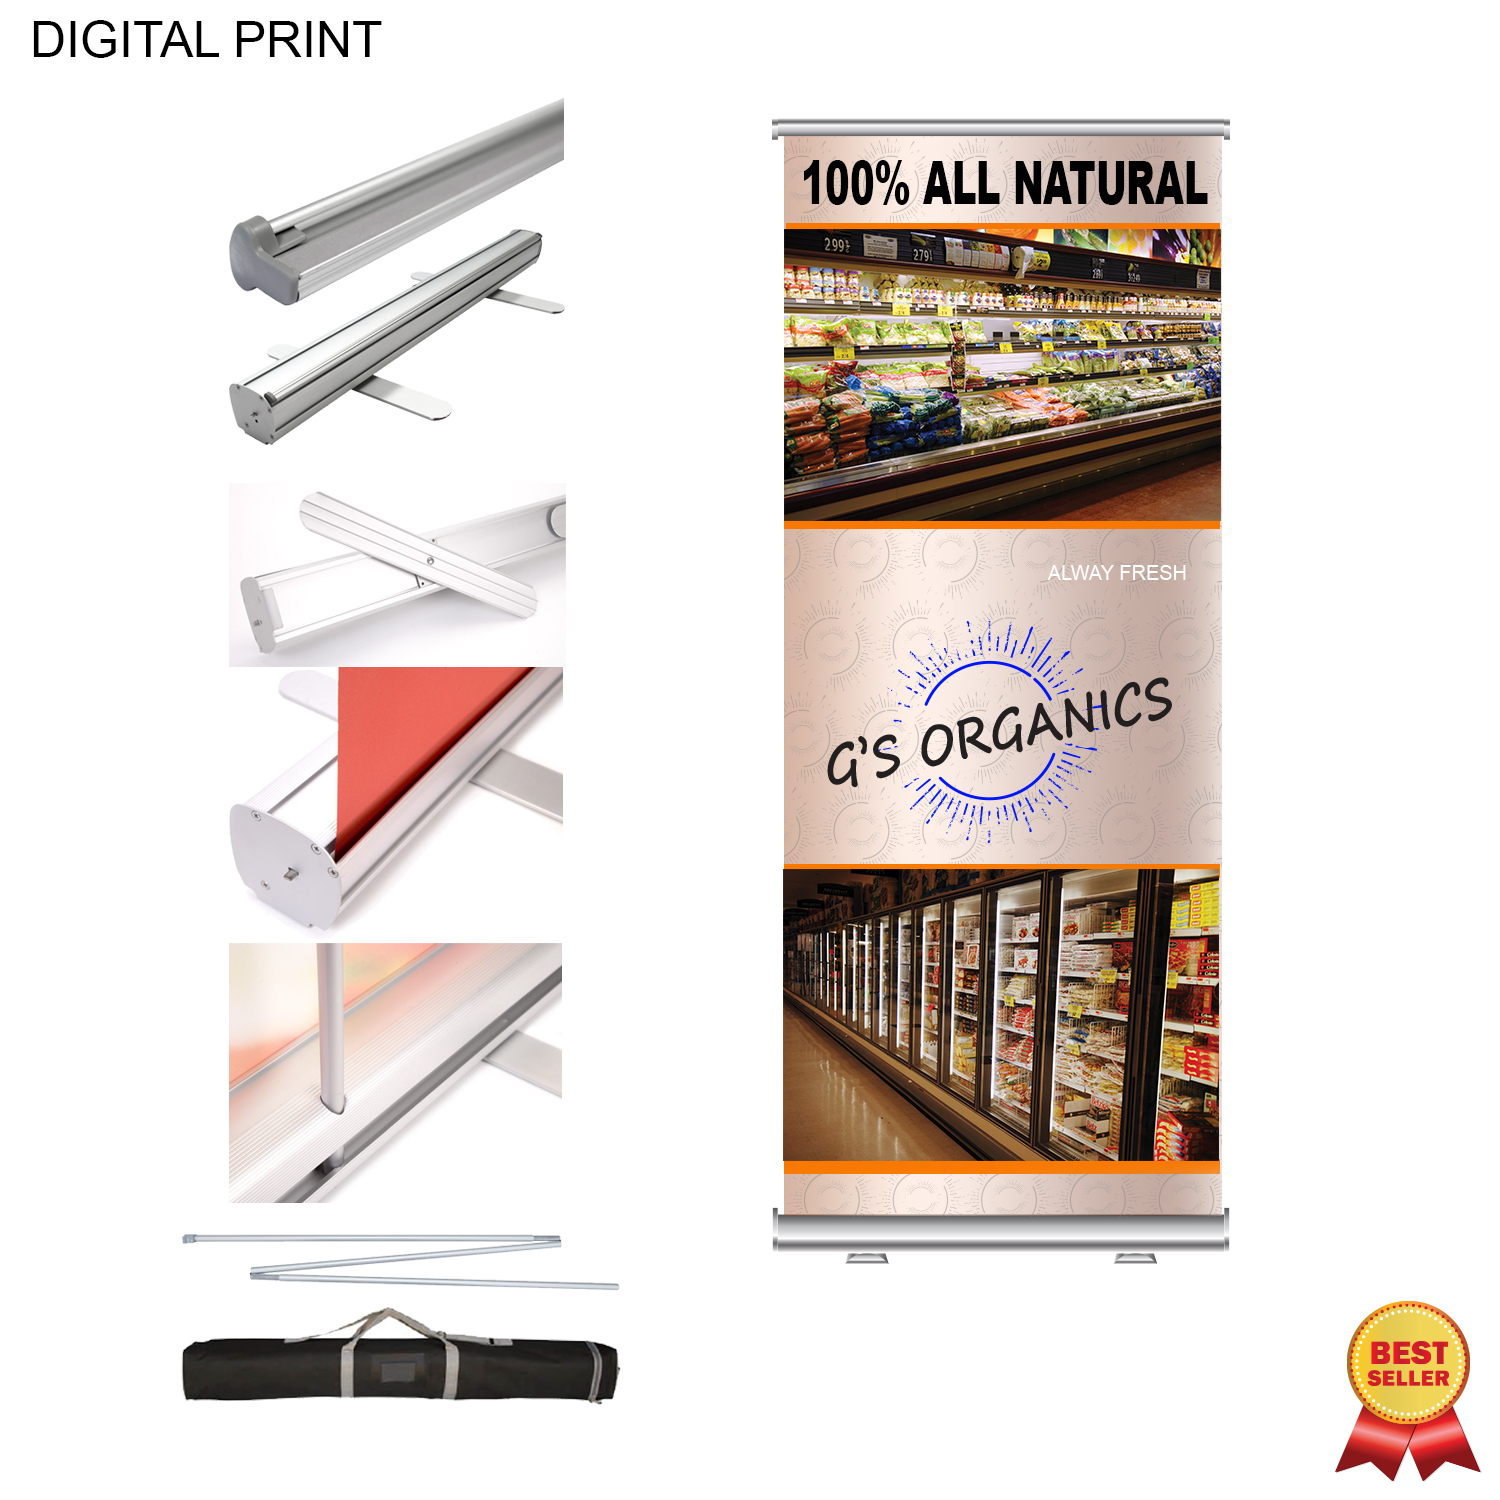 Premium Banner with Stand and Bag, 33.5x79, #DP583, Full Colour Imprint